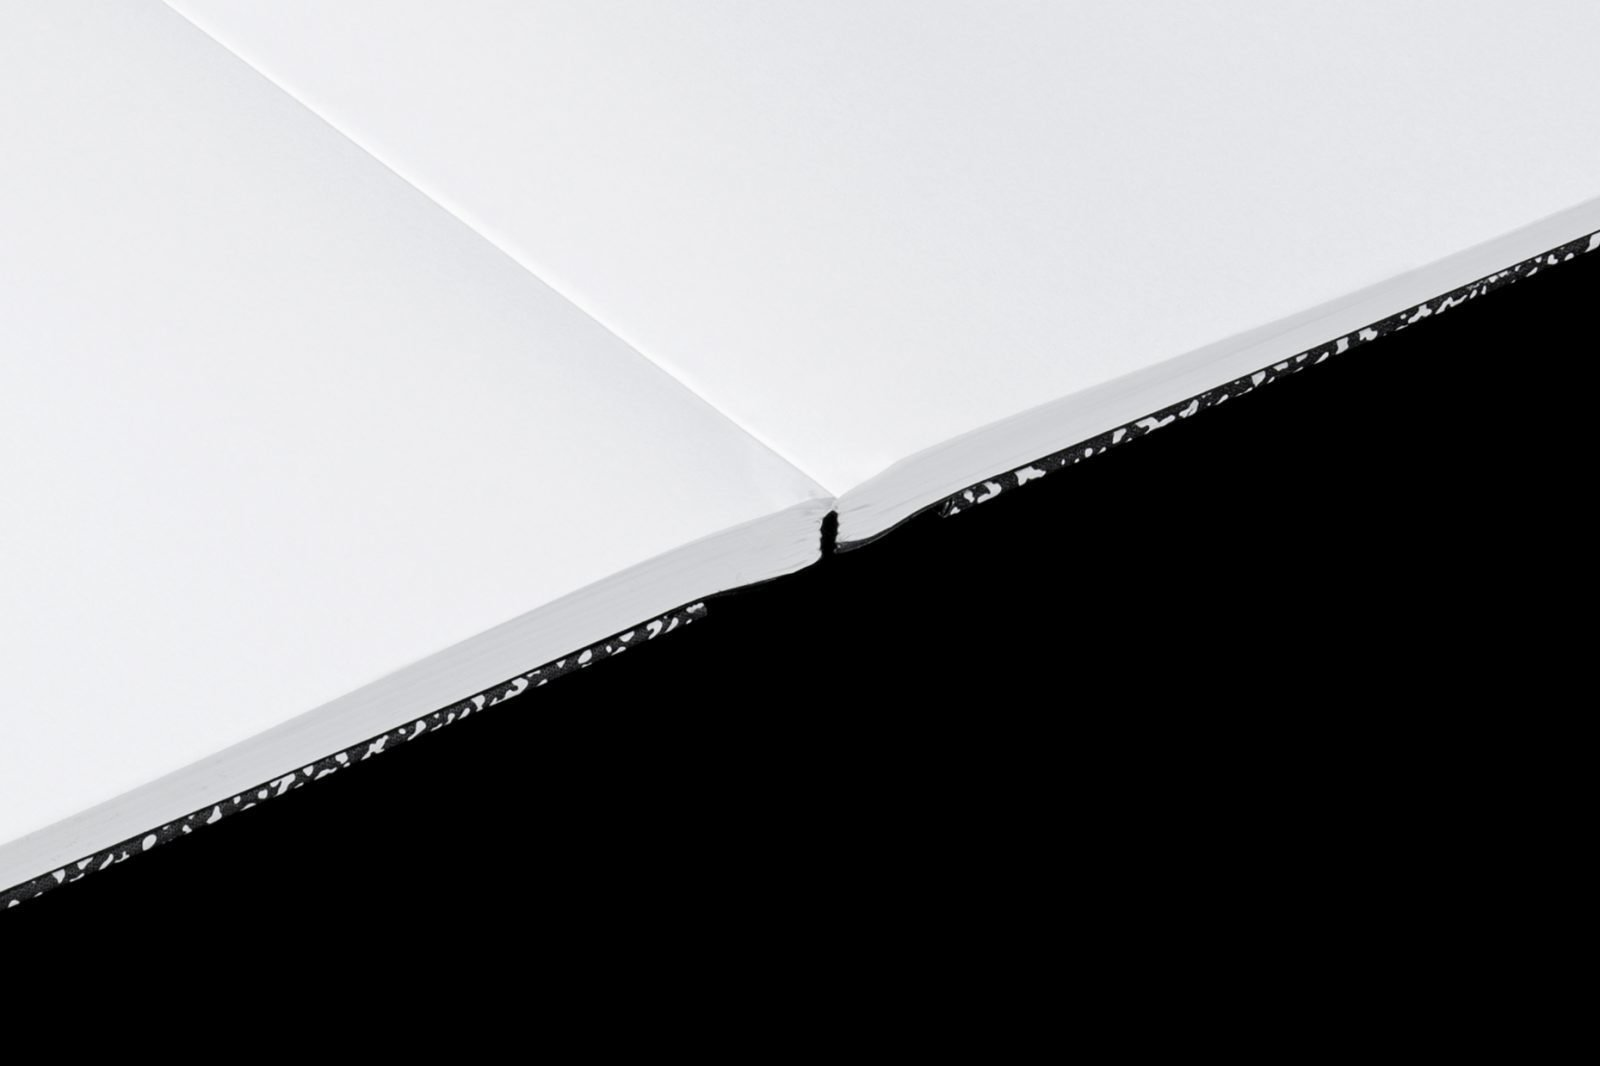 120 gsm ultra white, smooth, uncoated interior paper 155 whiteness (CIE), 96% opacity, 122 brightness (ISO 2470/D65 %), 150 Roughness (Bendtsen, ml/min)